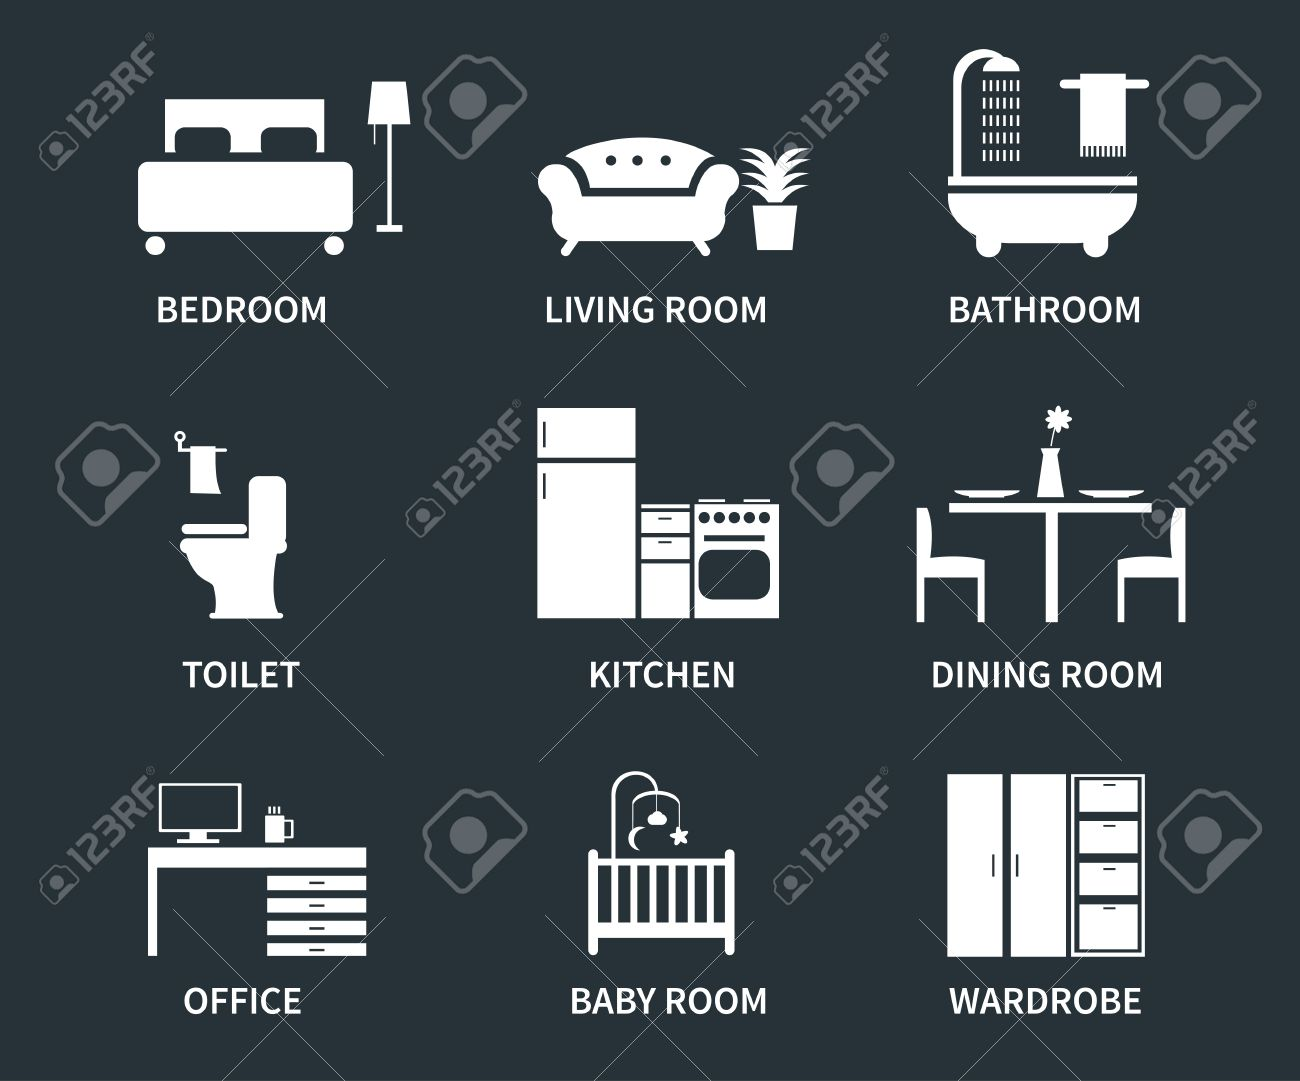 Home Interior Design Icons For Bedroom Living Room Bathroom Kitchen Dining